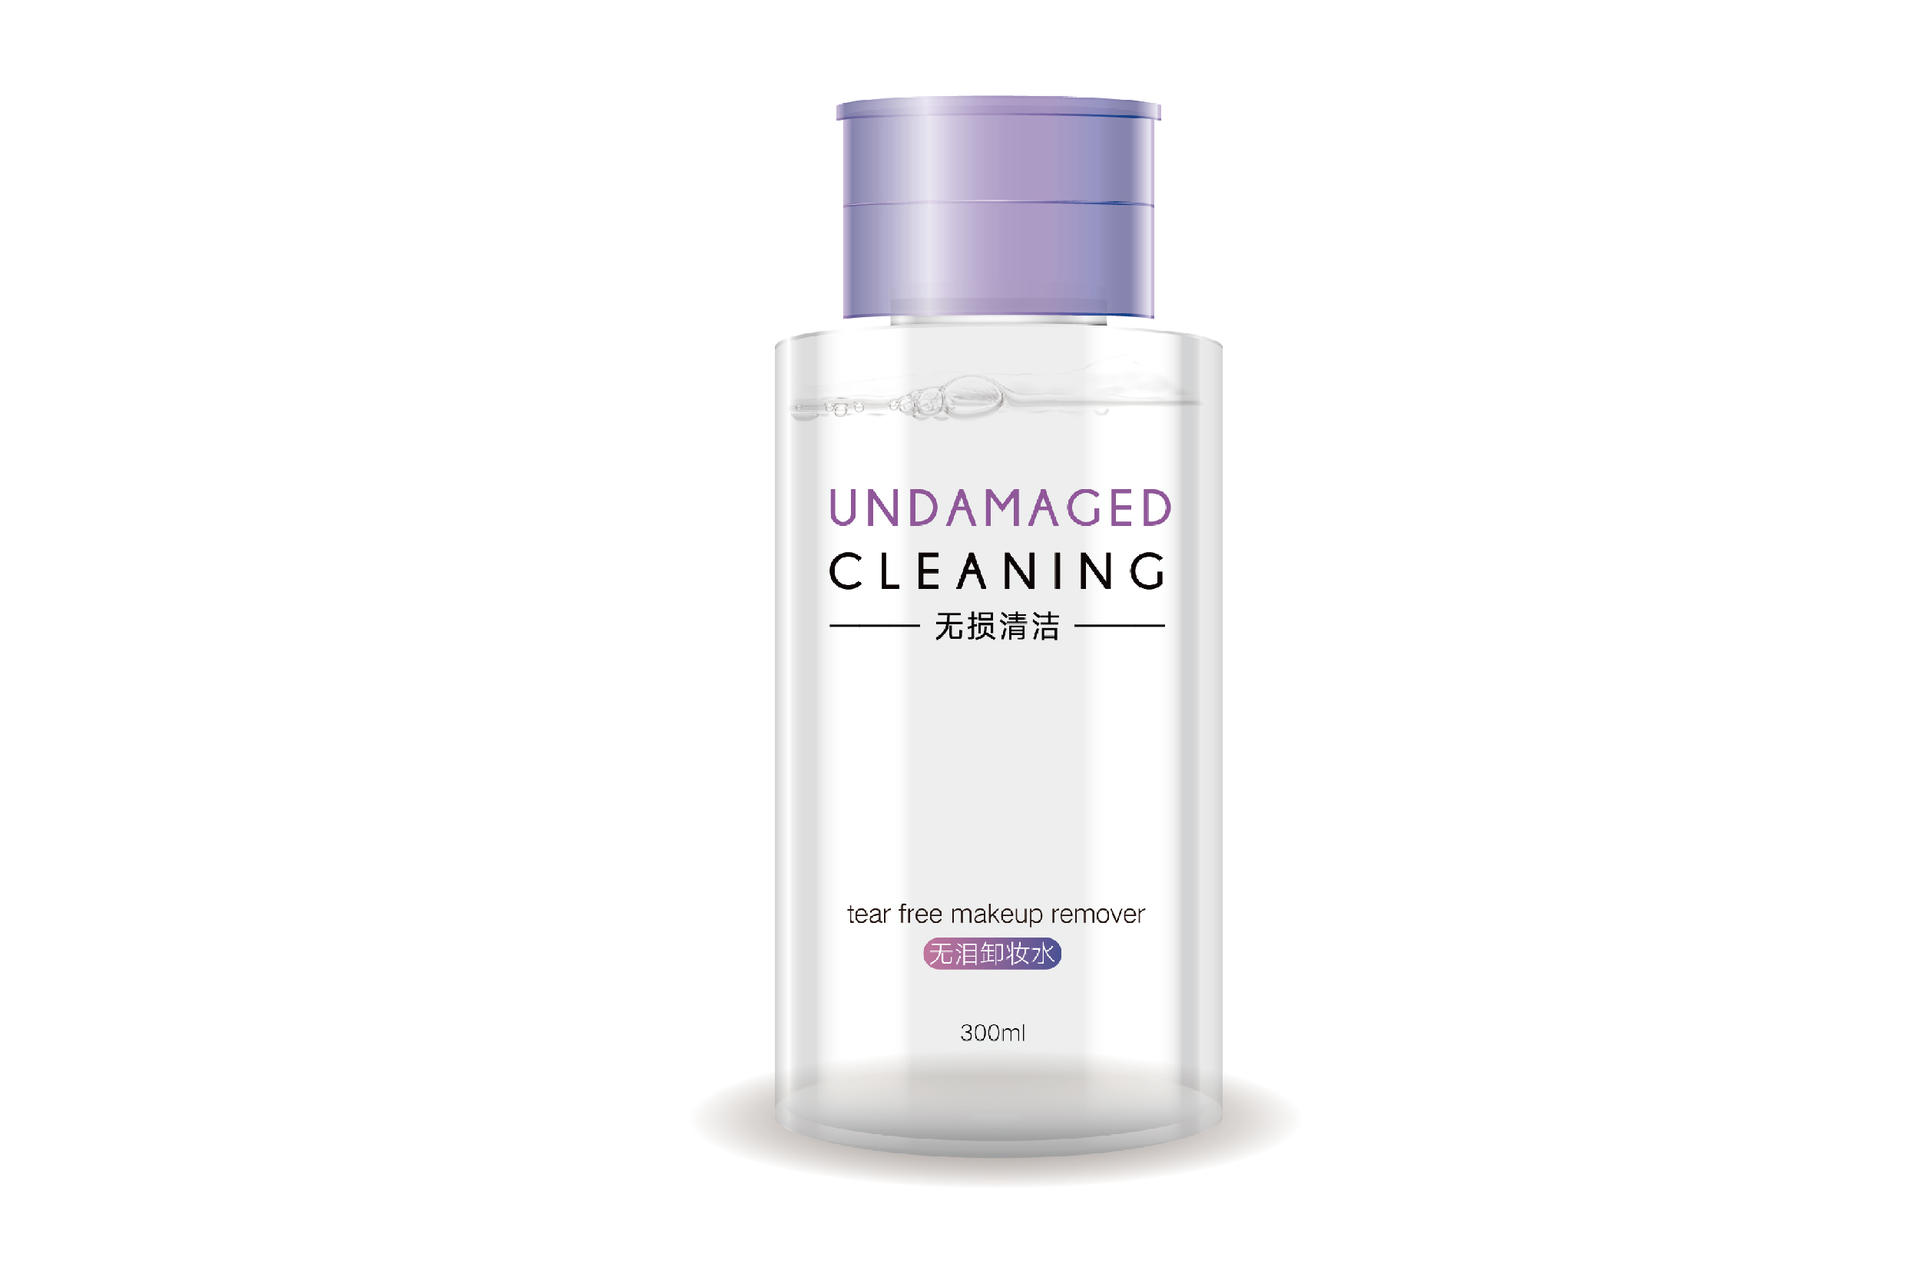 Undamaged Cleaning Tear Free Makeup Remover